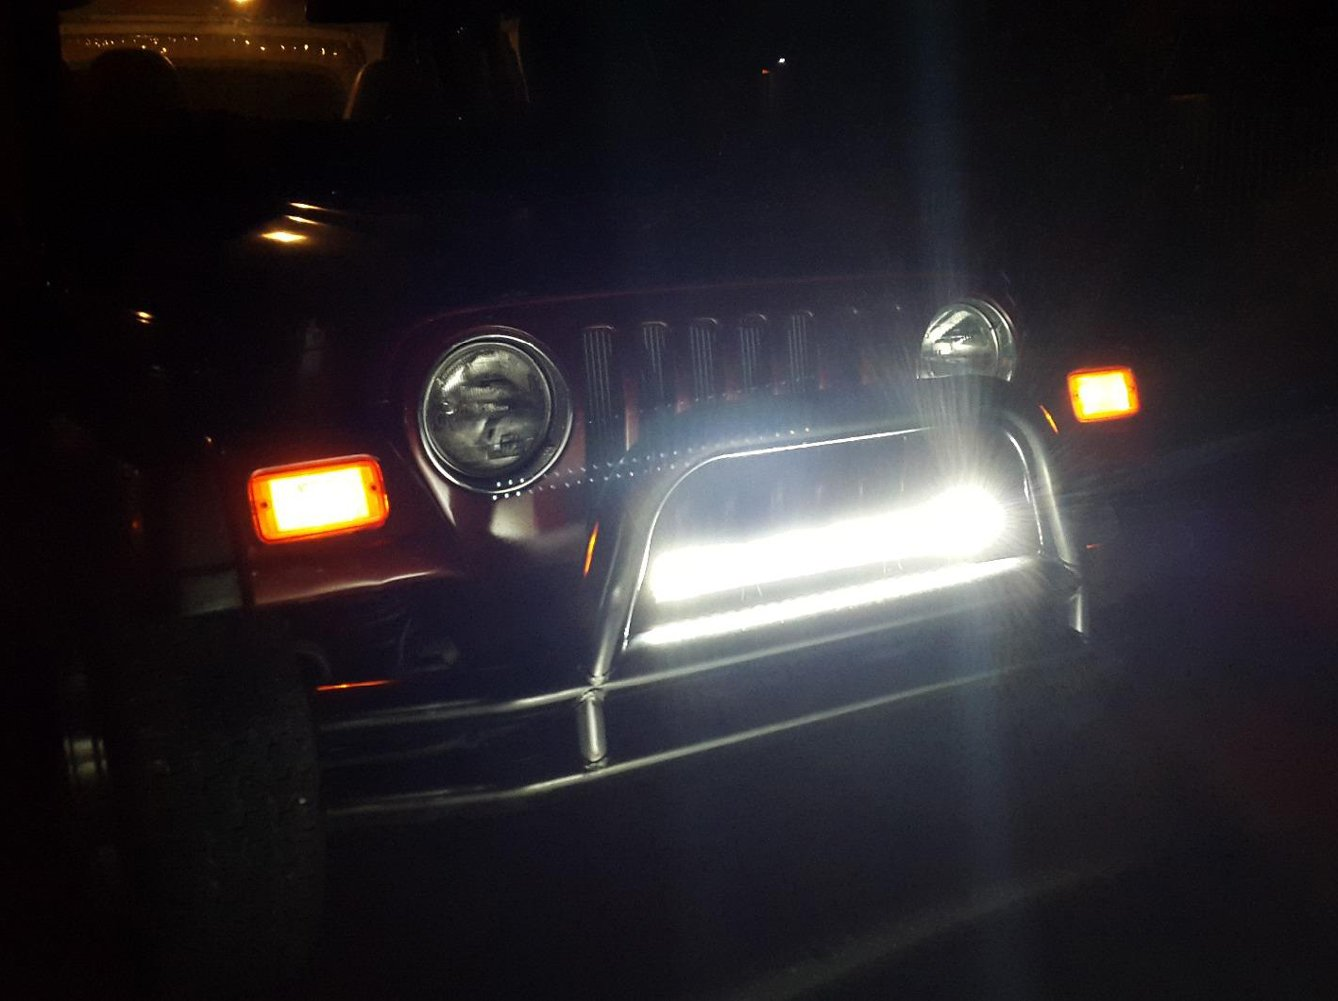 22 inch Willpower 22 inch 324W Triple Row Flood Spot Combo Beam Led Bar Driving Boat Off Road Lights for Jeep SUV Truck ATVs .